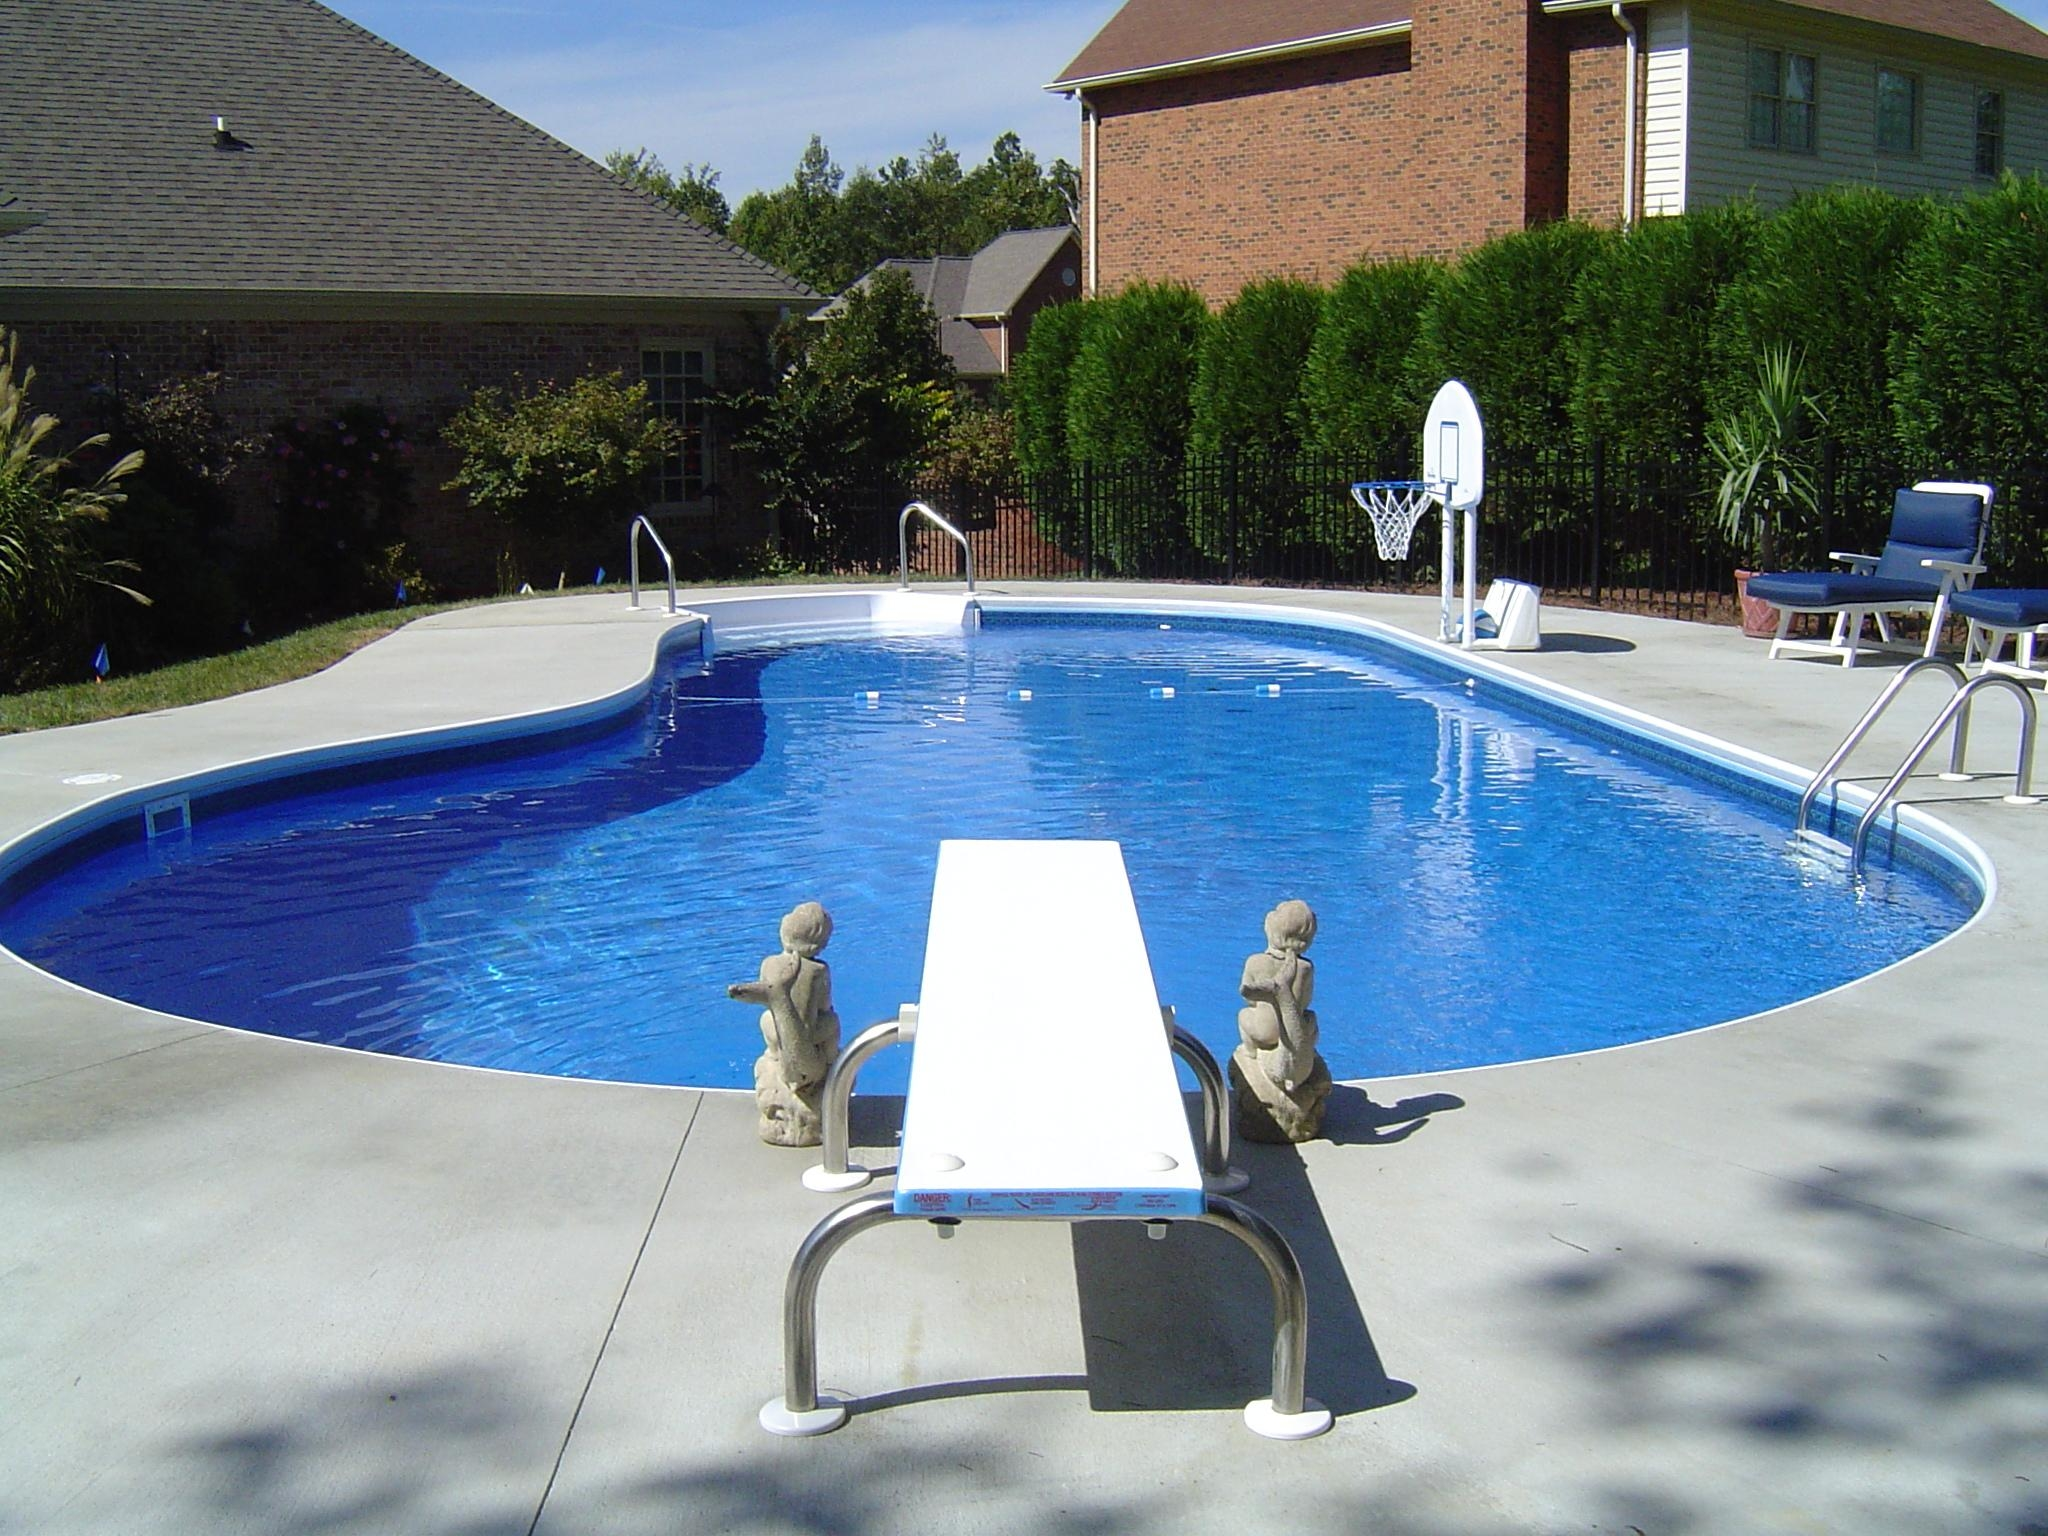 holiday pools of winston salem inc 5730 country club rd winston salem nc swimming pools